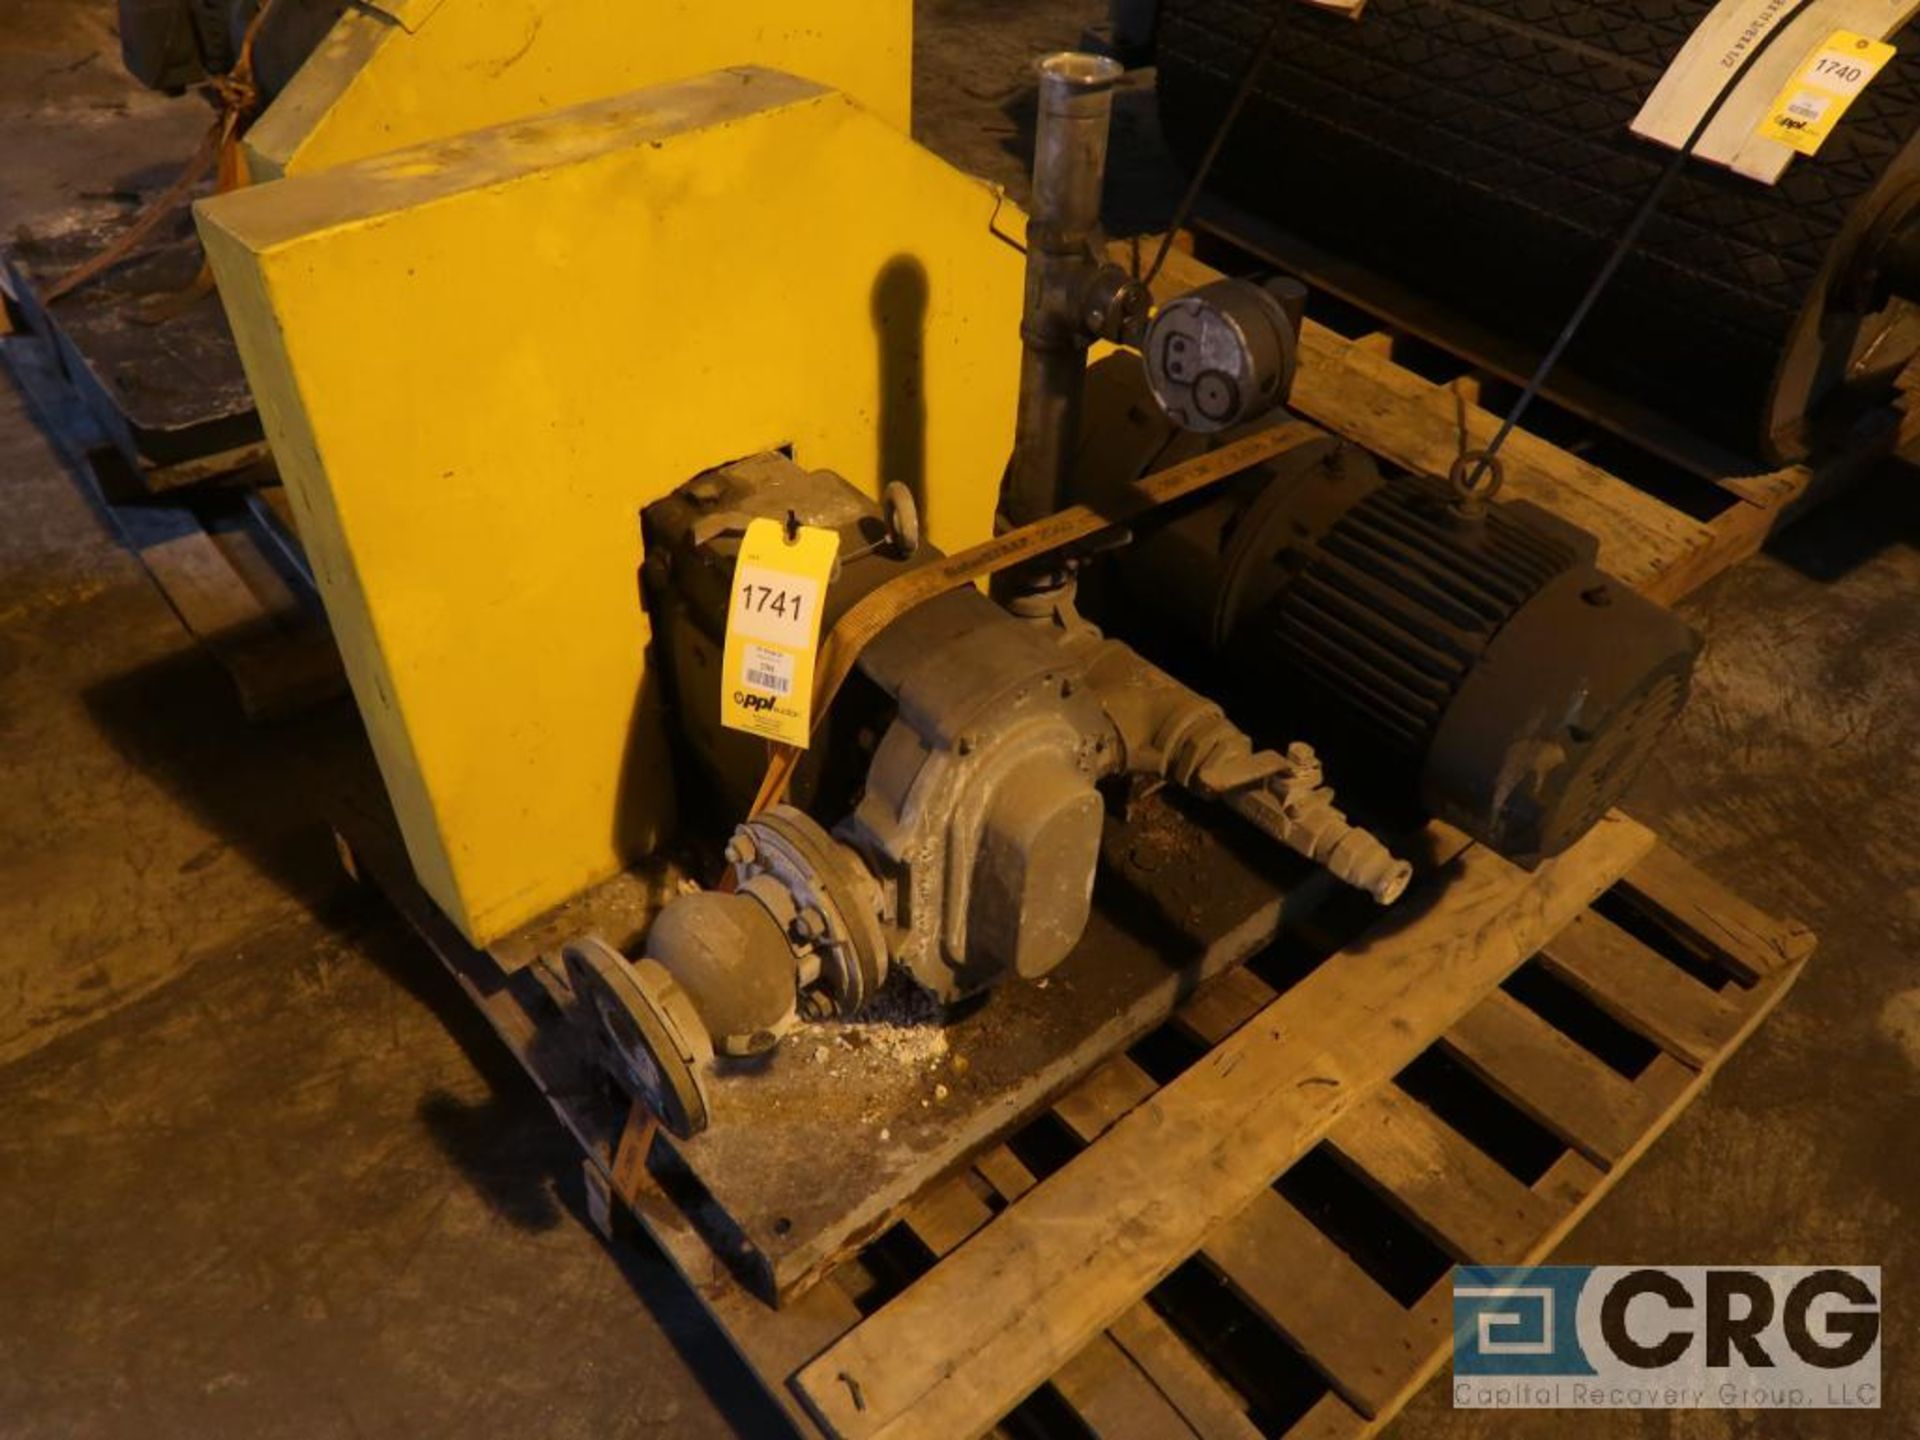 Waukesha 5050 positive displacement pump with 5 HP motor (Next Bay Cage Area)